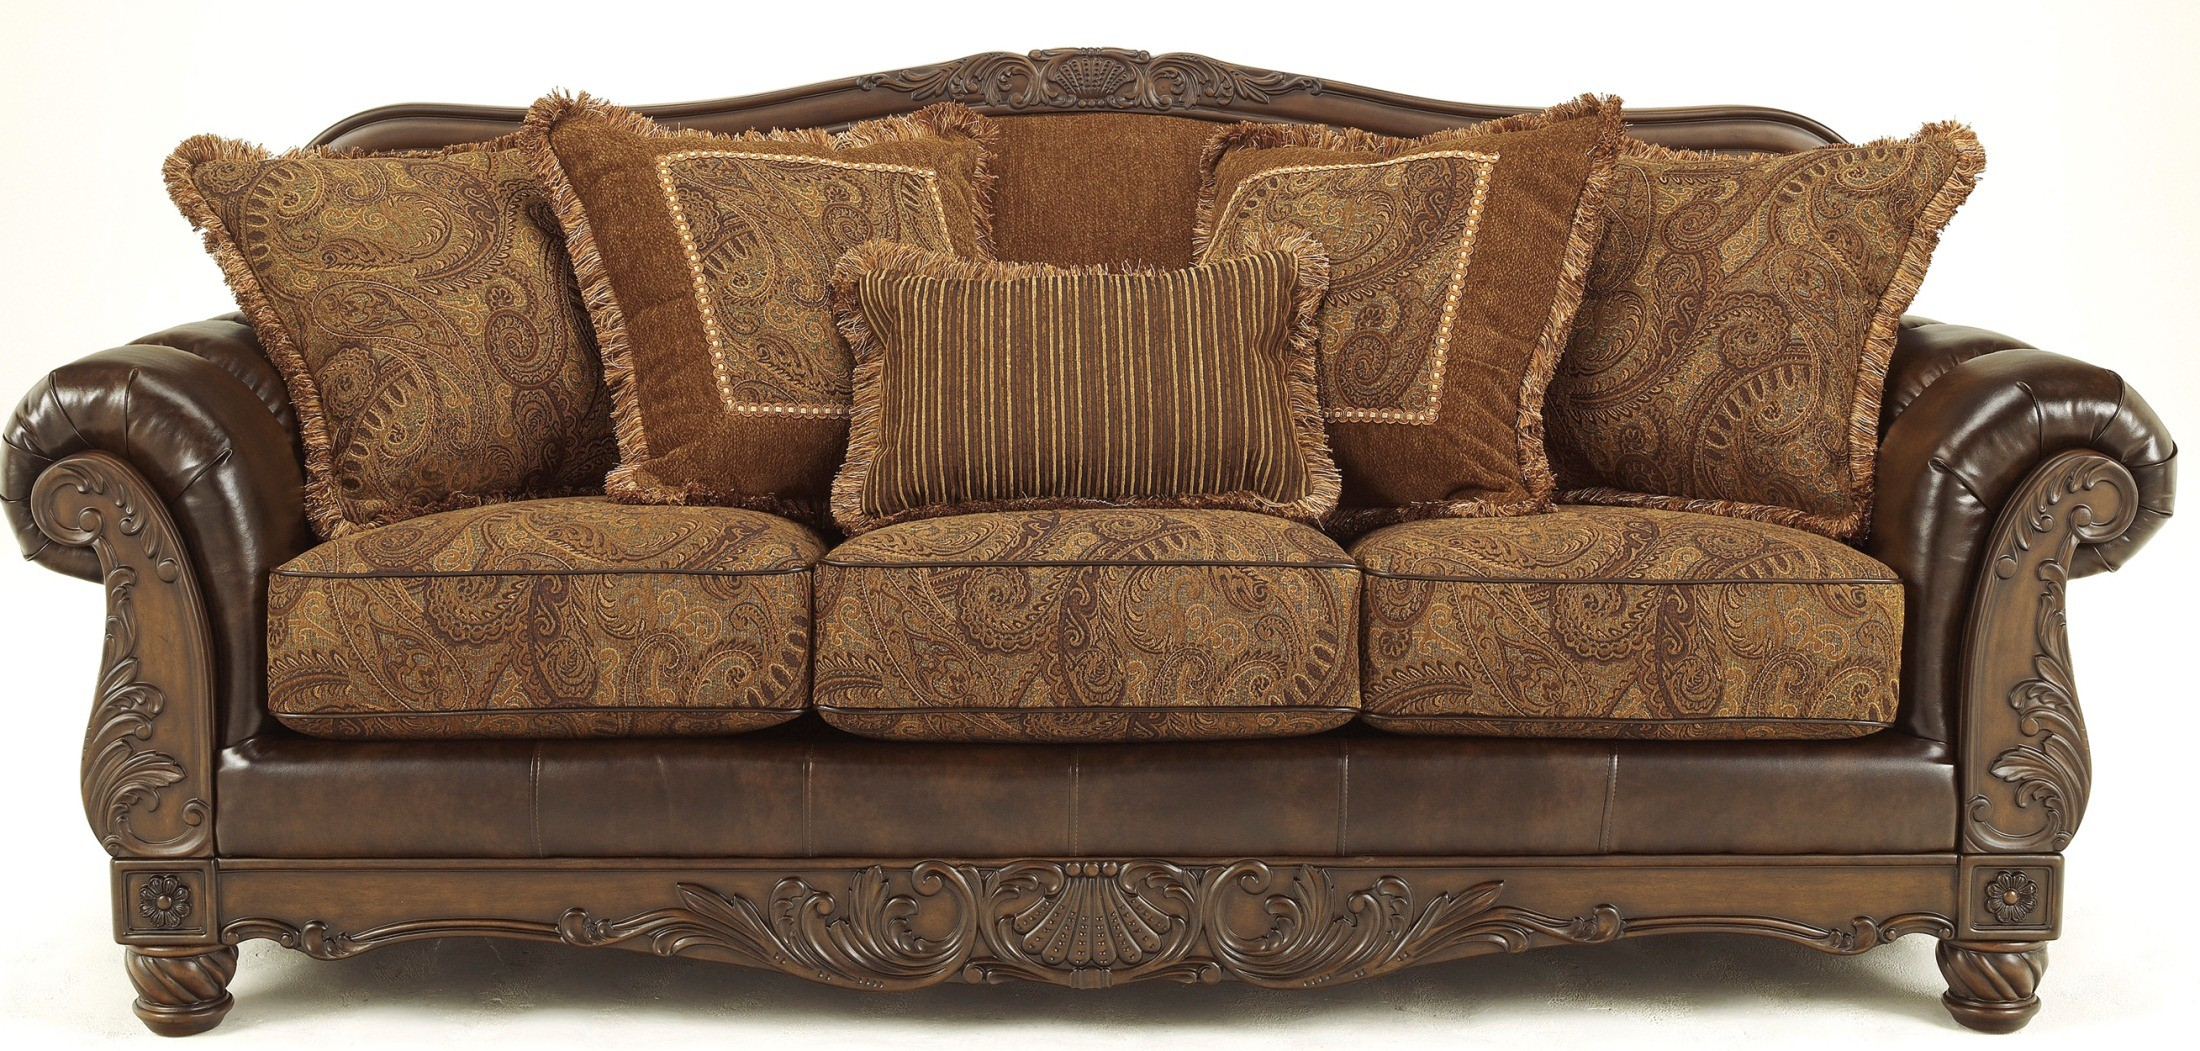 Fresco Durablend Antique Sofa From Ashley 6310038 Coleman Furniture